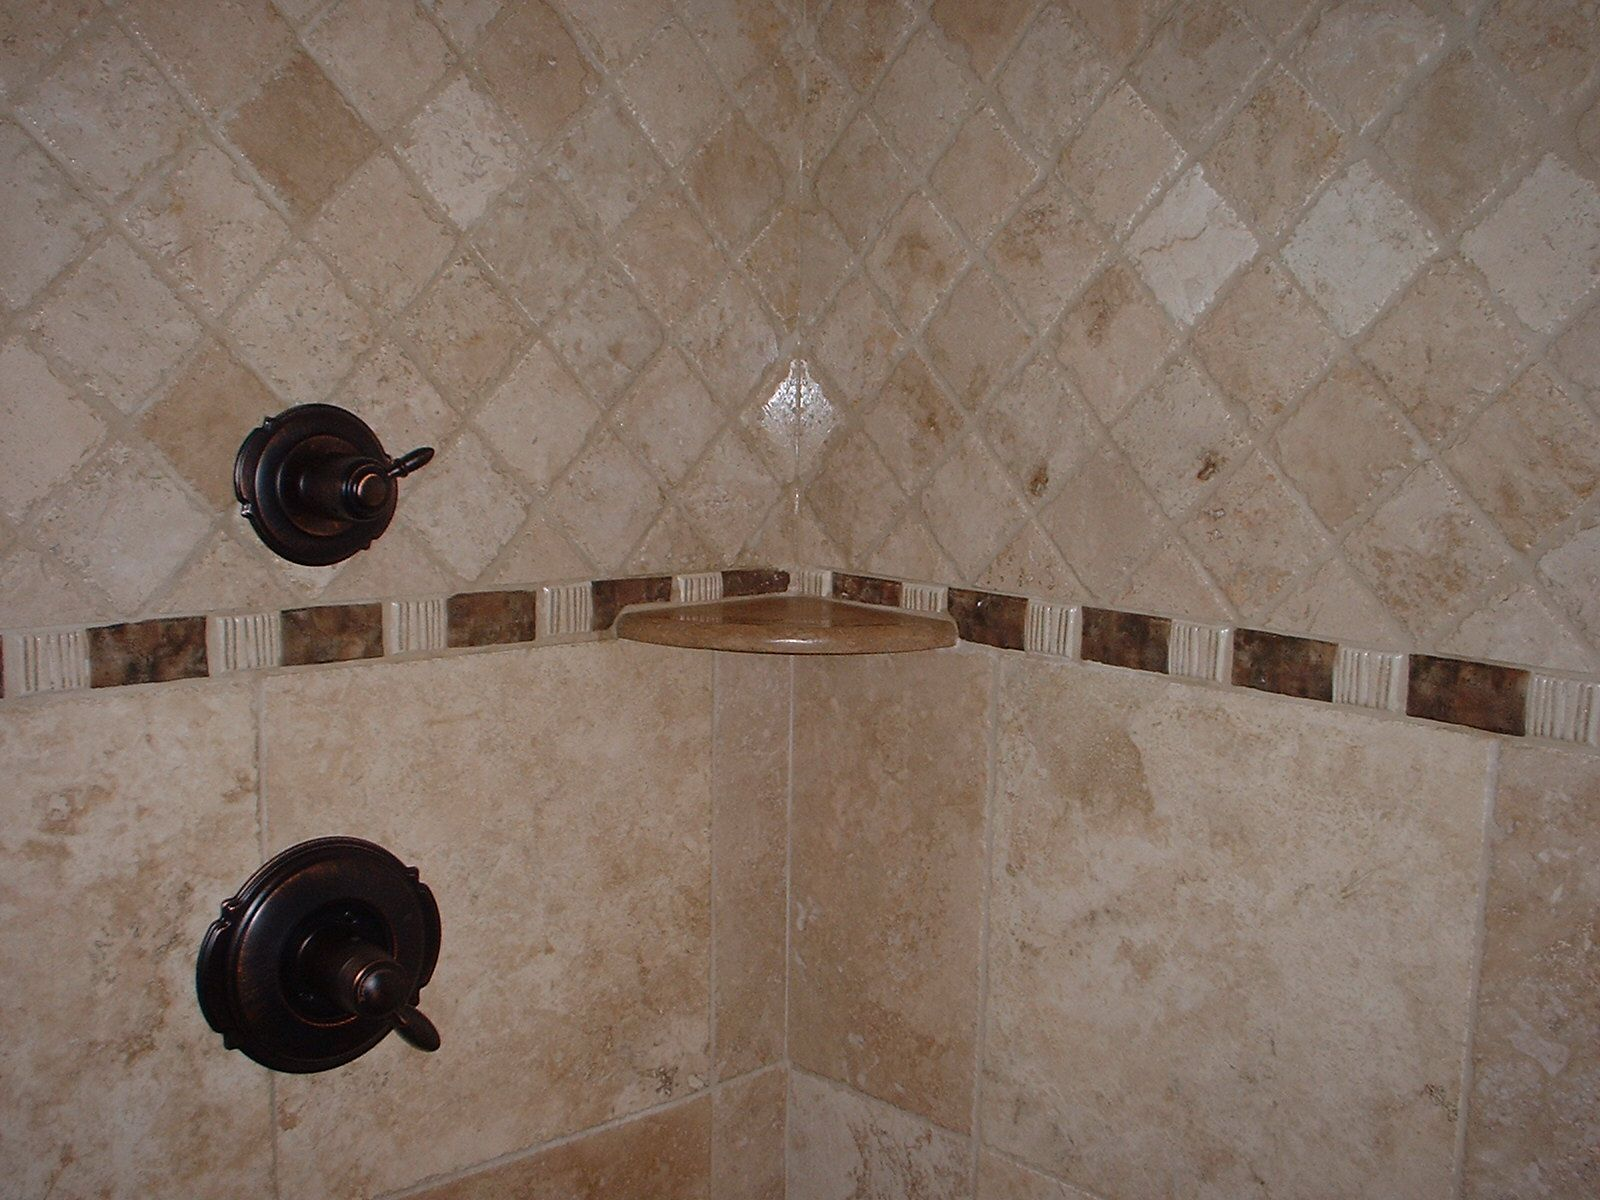 Shower Wall Tile Design wood look Find This Pin And More On Bathroom Tile Bathroom Shower Design